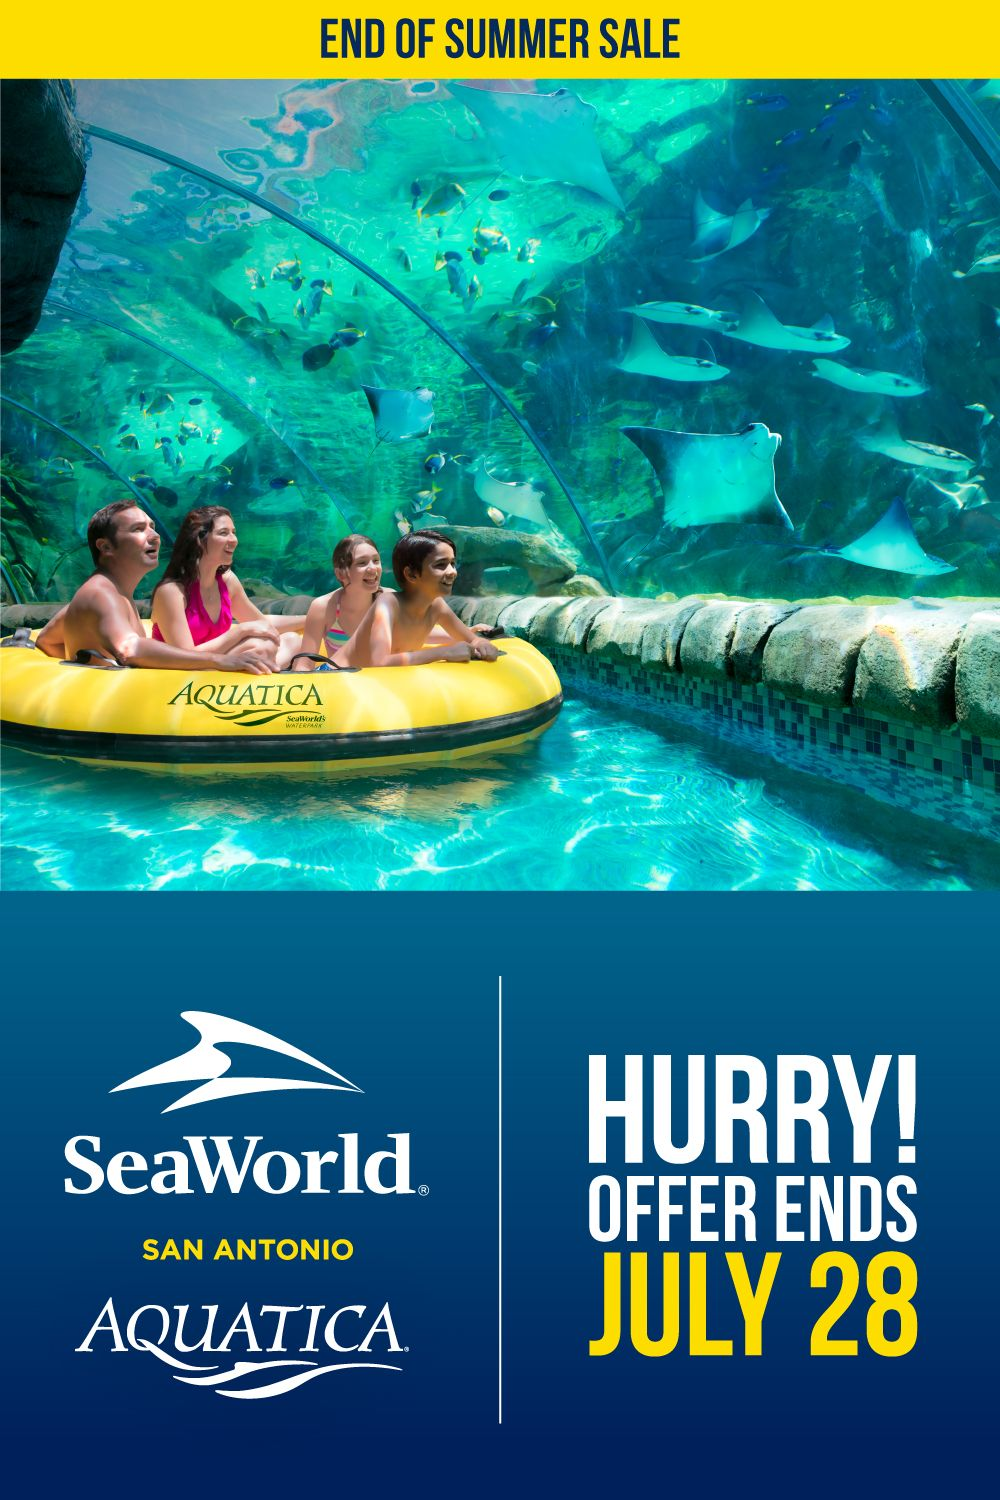 Get A 3 Day Flex Ticket For Both Seaworld And Aquatica For Only